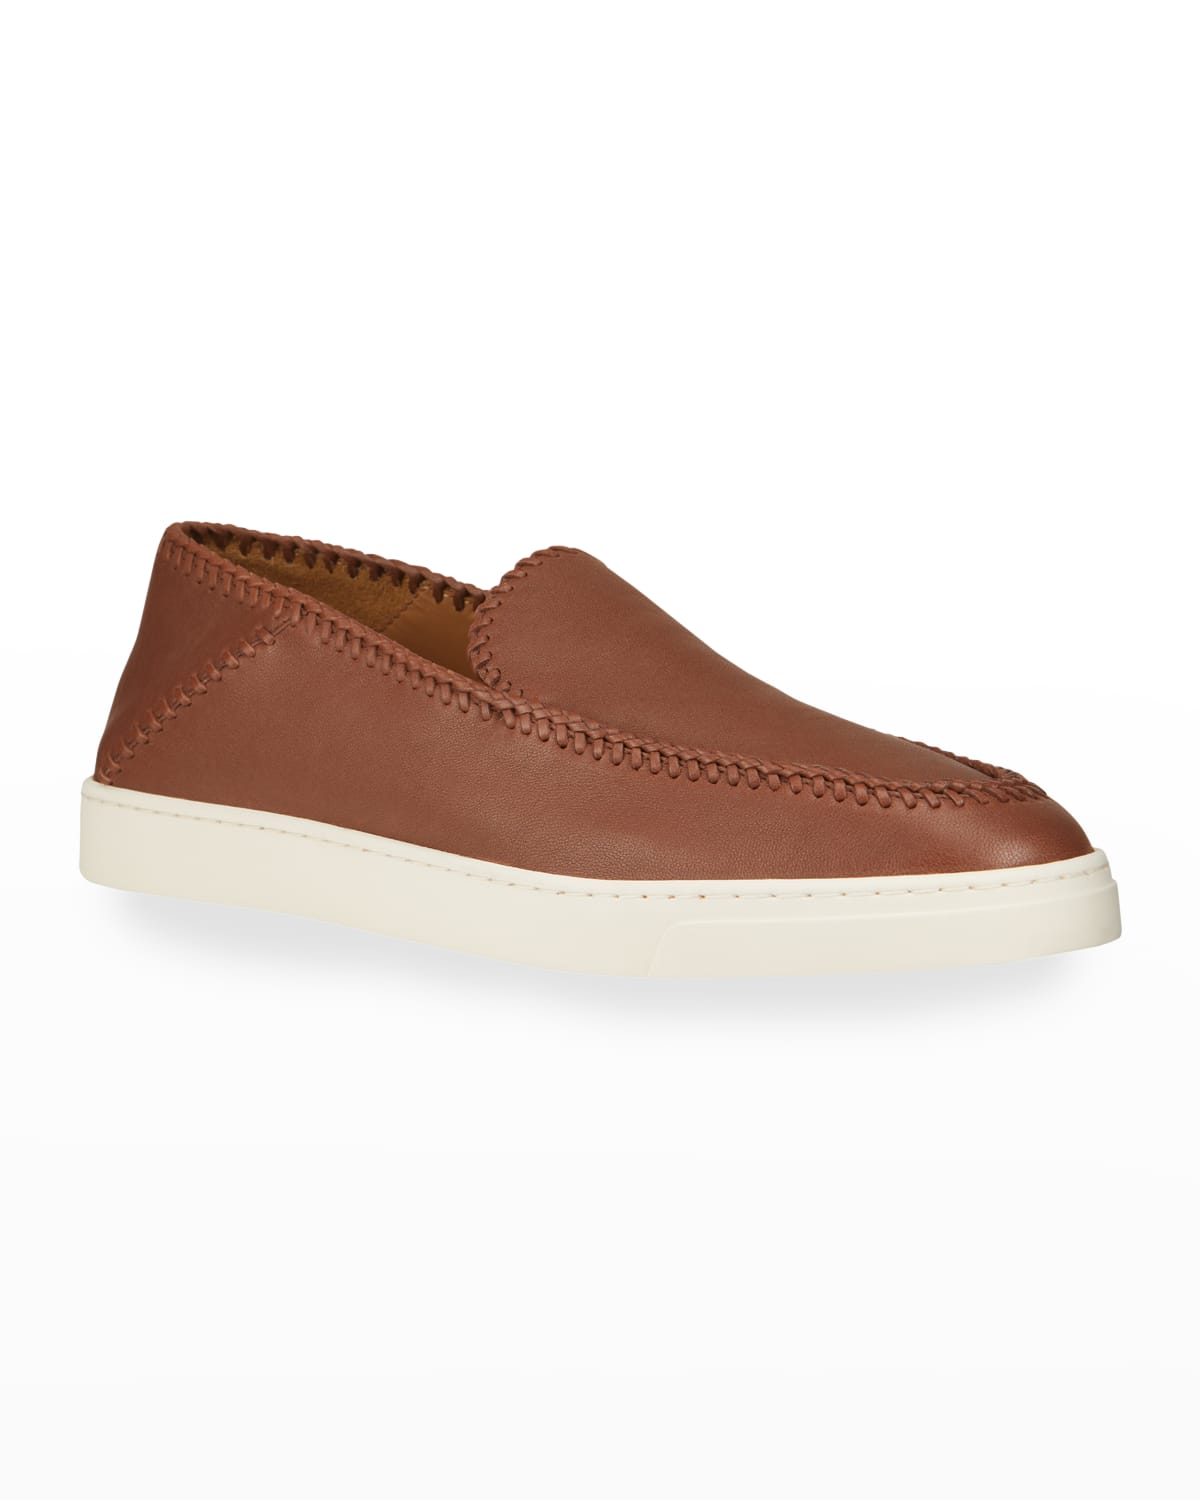 Men's Braided Leather Slip-On Shoes